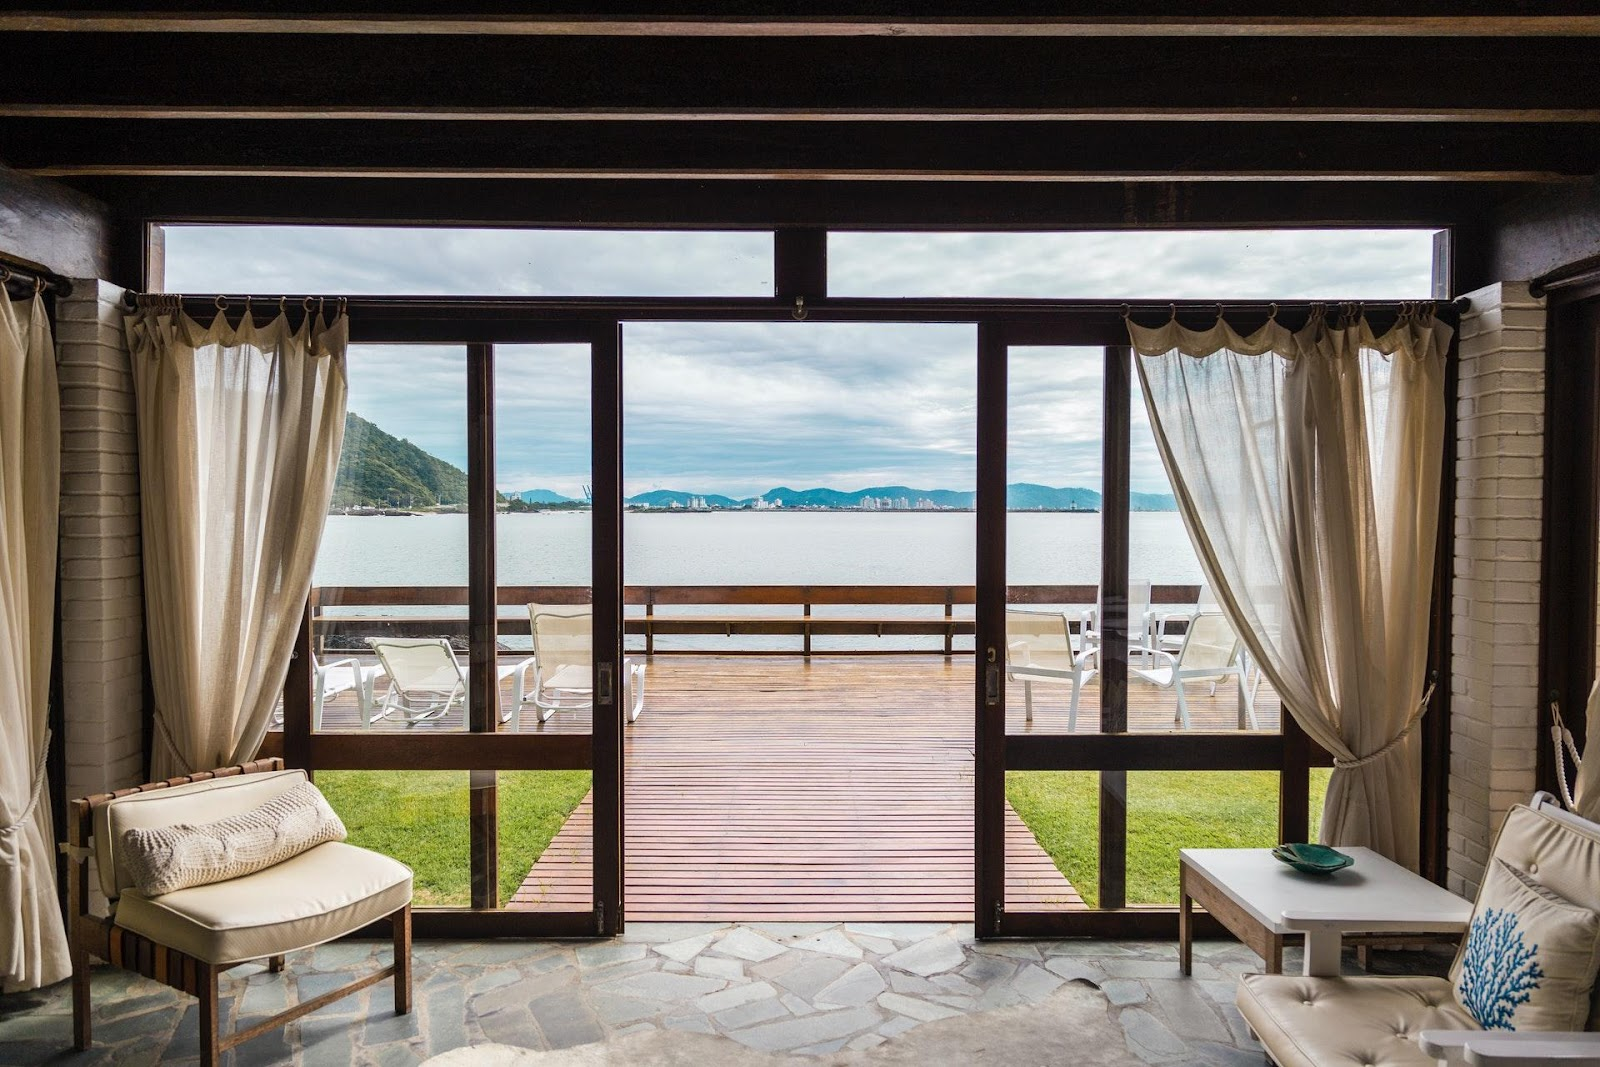 An open door and a waterfront view